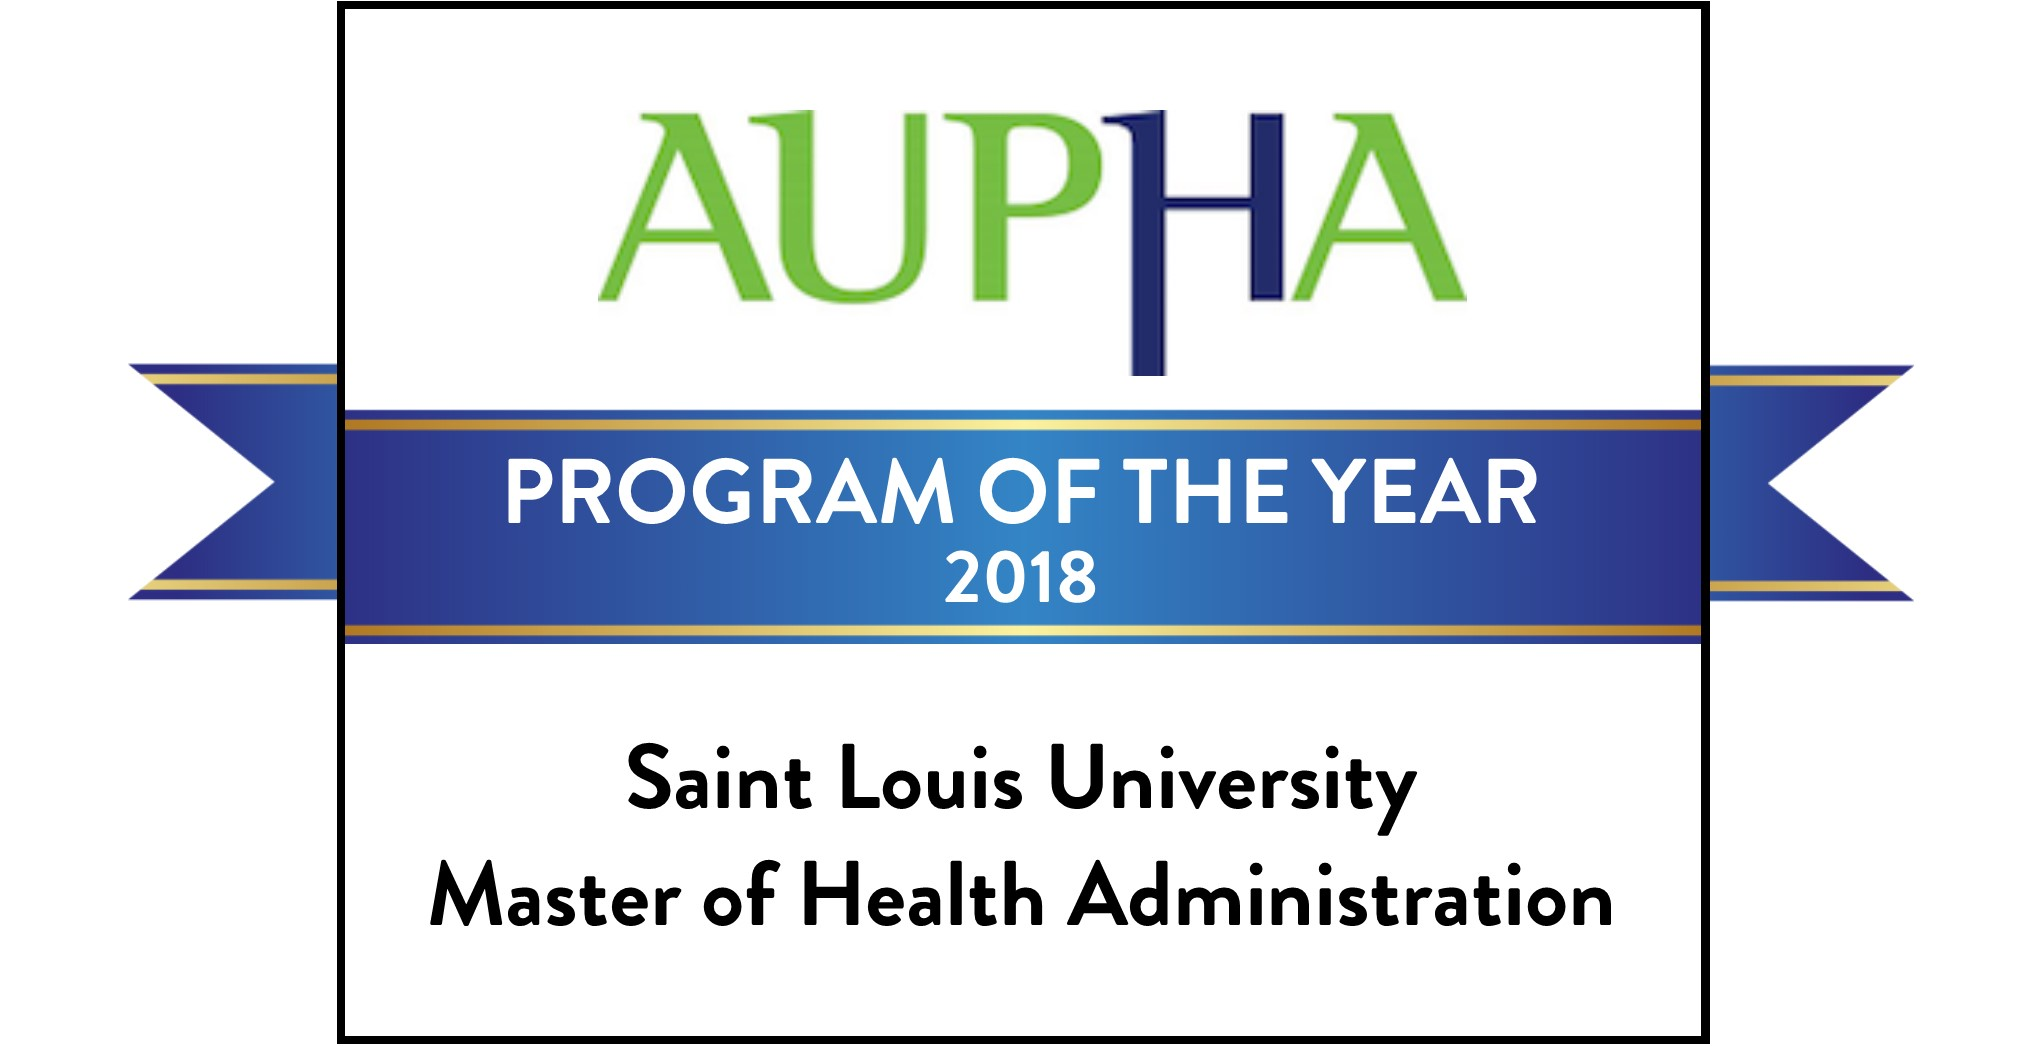 AUPHA Program of the Year